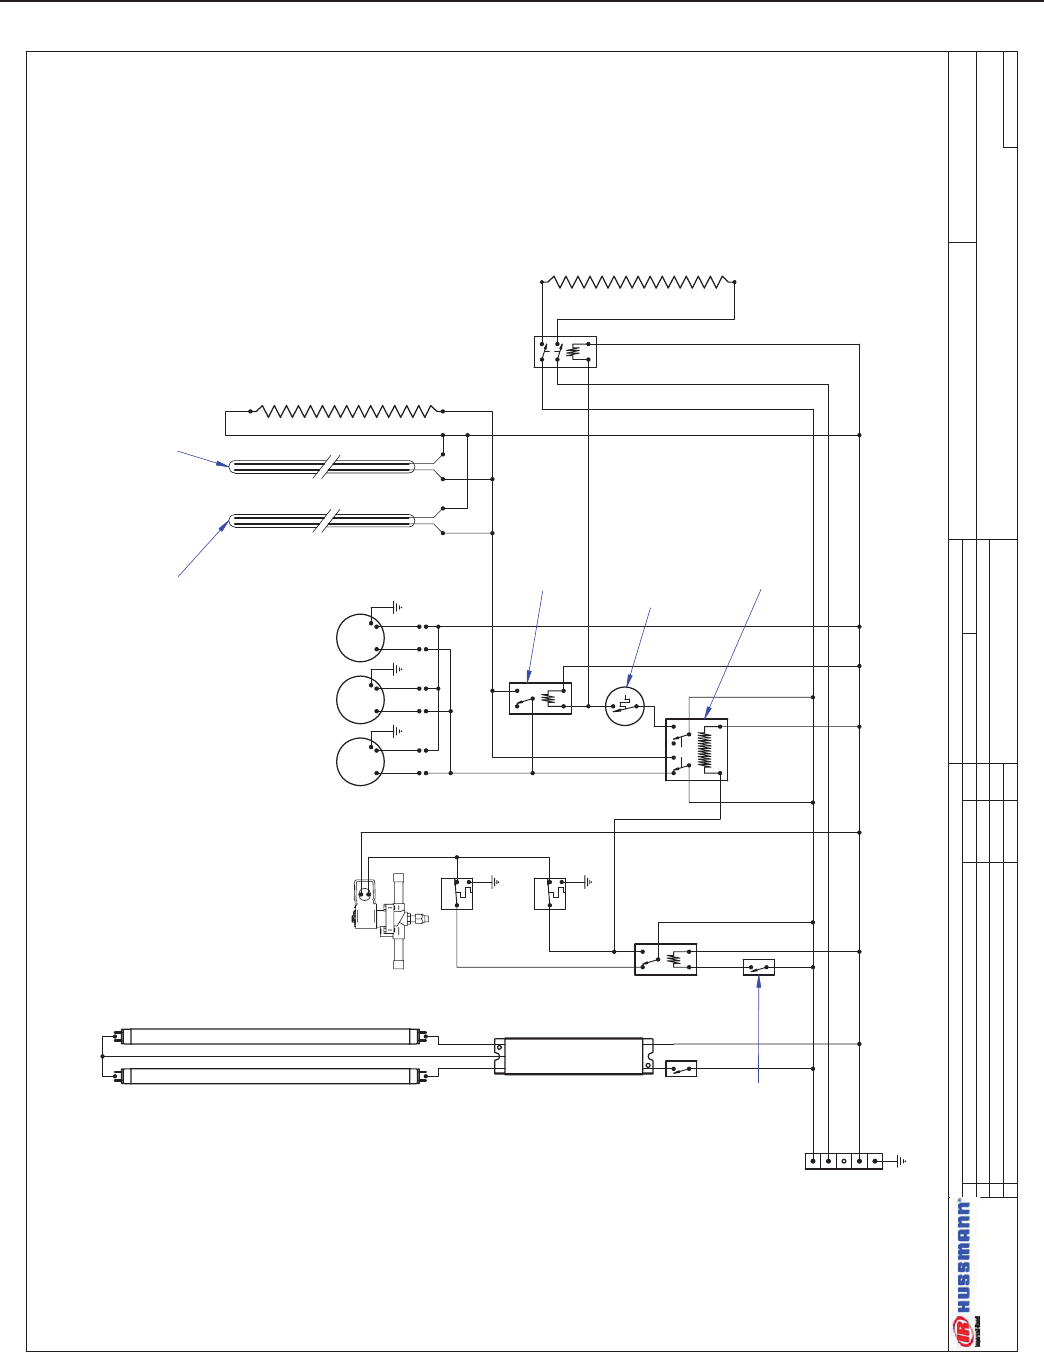 6b0c3921 3432 43fa ada4 bfb9776e5084 bg10 page 16 of hussman refrigerator fmss l user guide manualsonline com hussmann rl5 wiring diagram at crackthecode.co